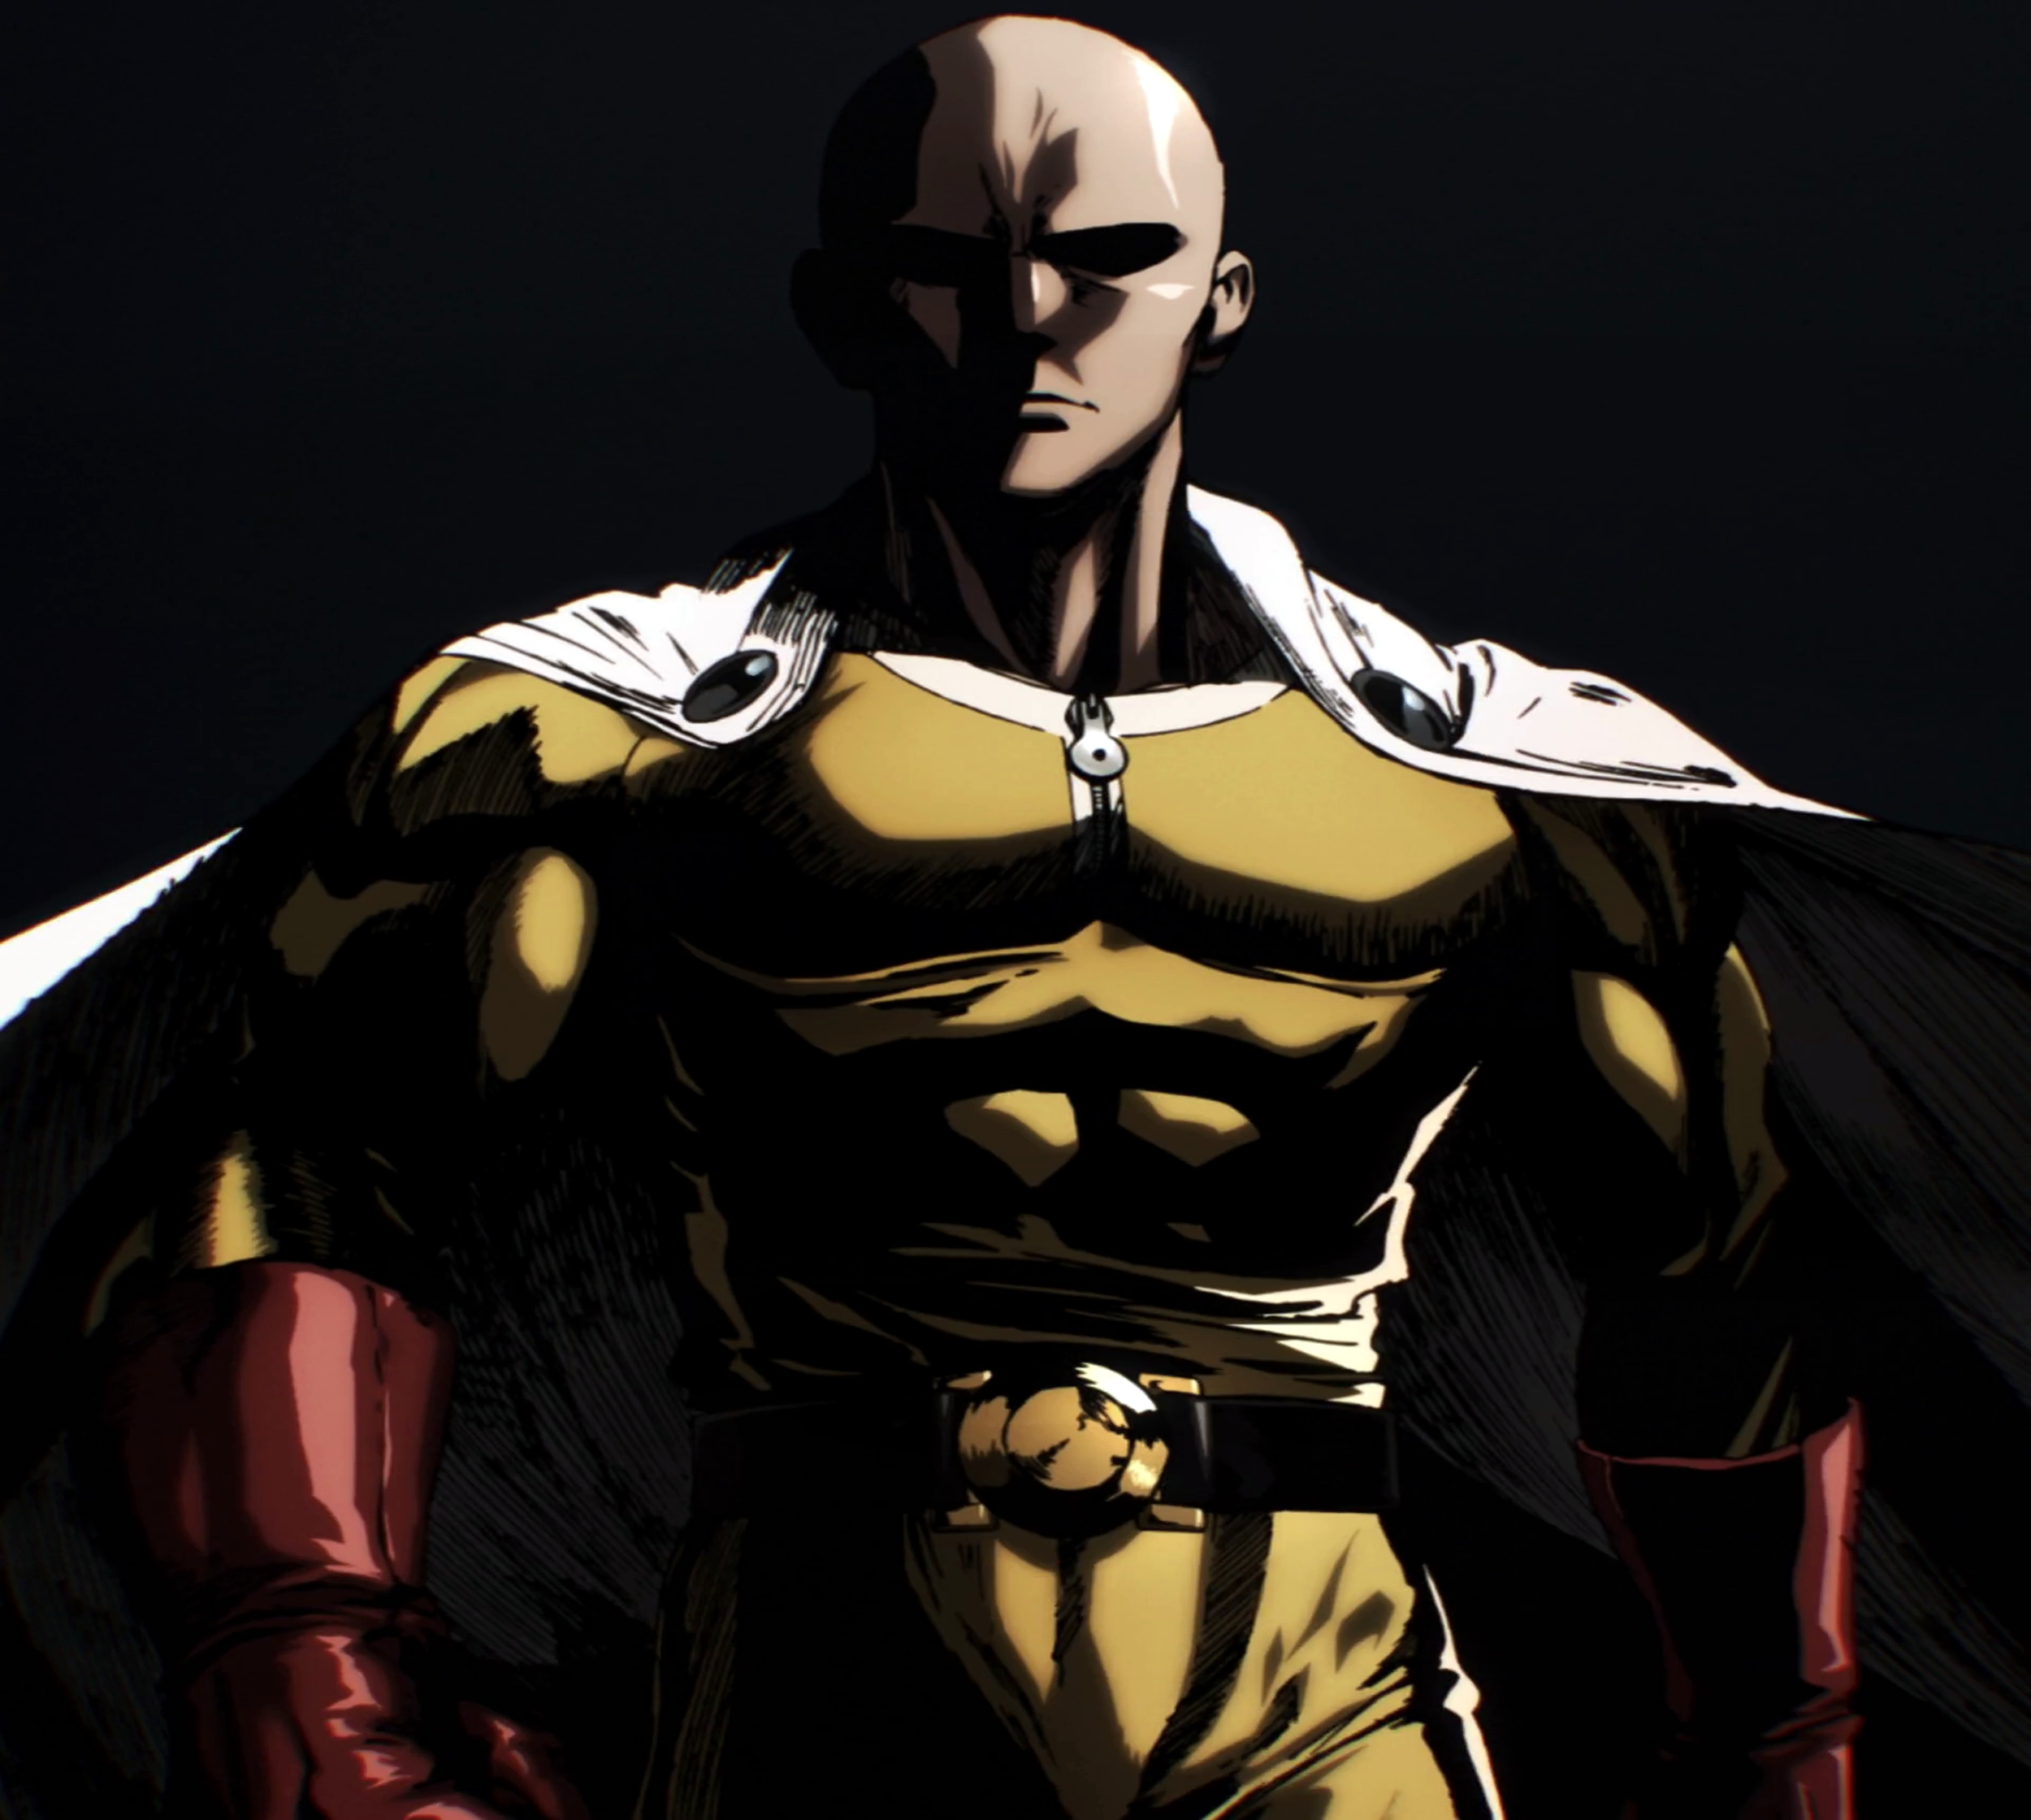 10 New One Punch Man Android Wallpaper FULL HD 1080p For PC Background